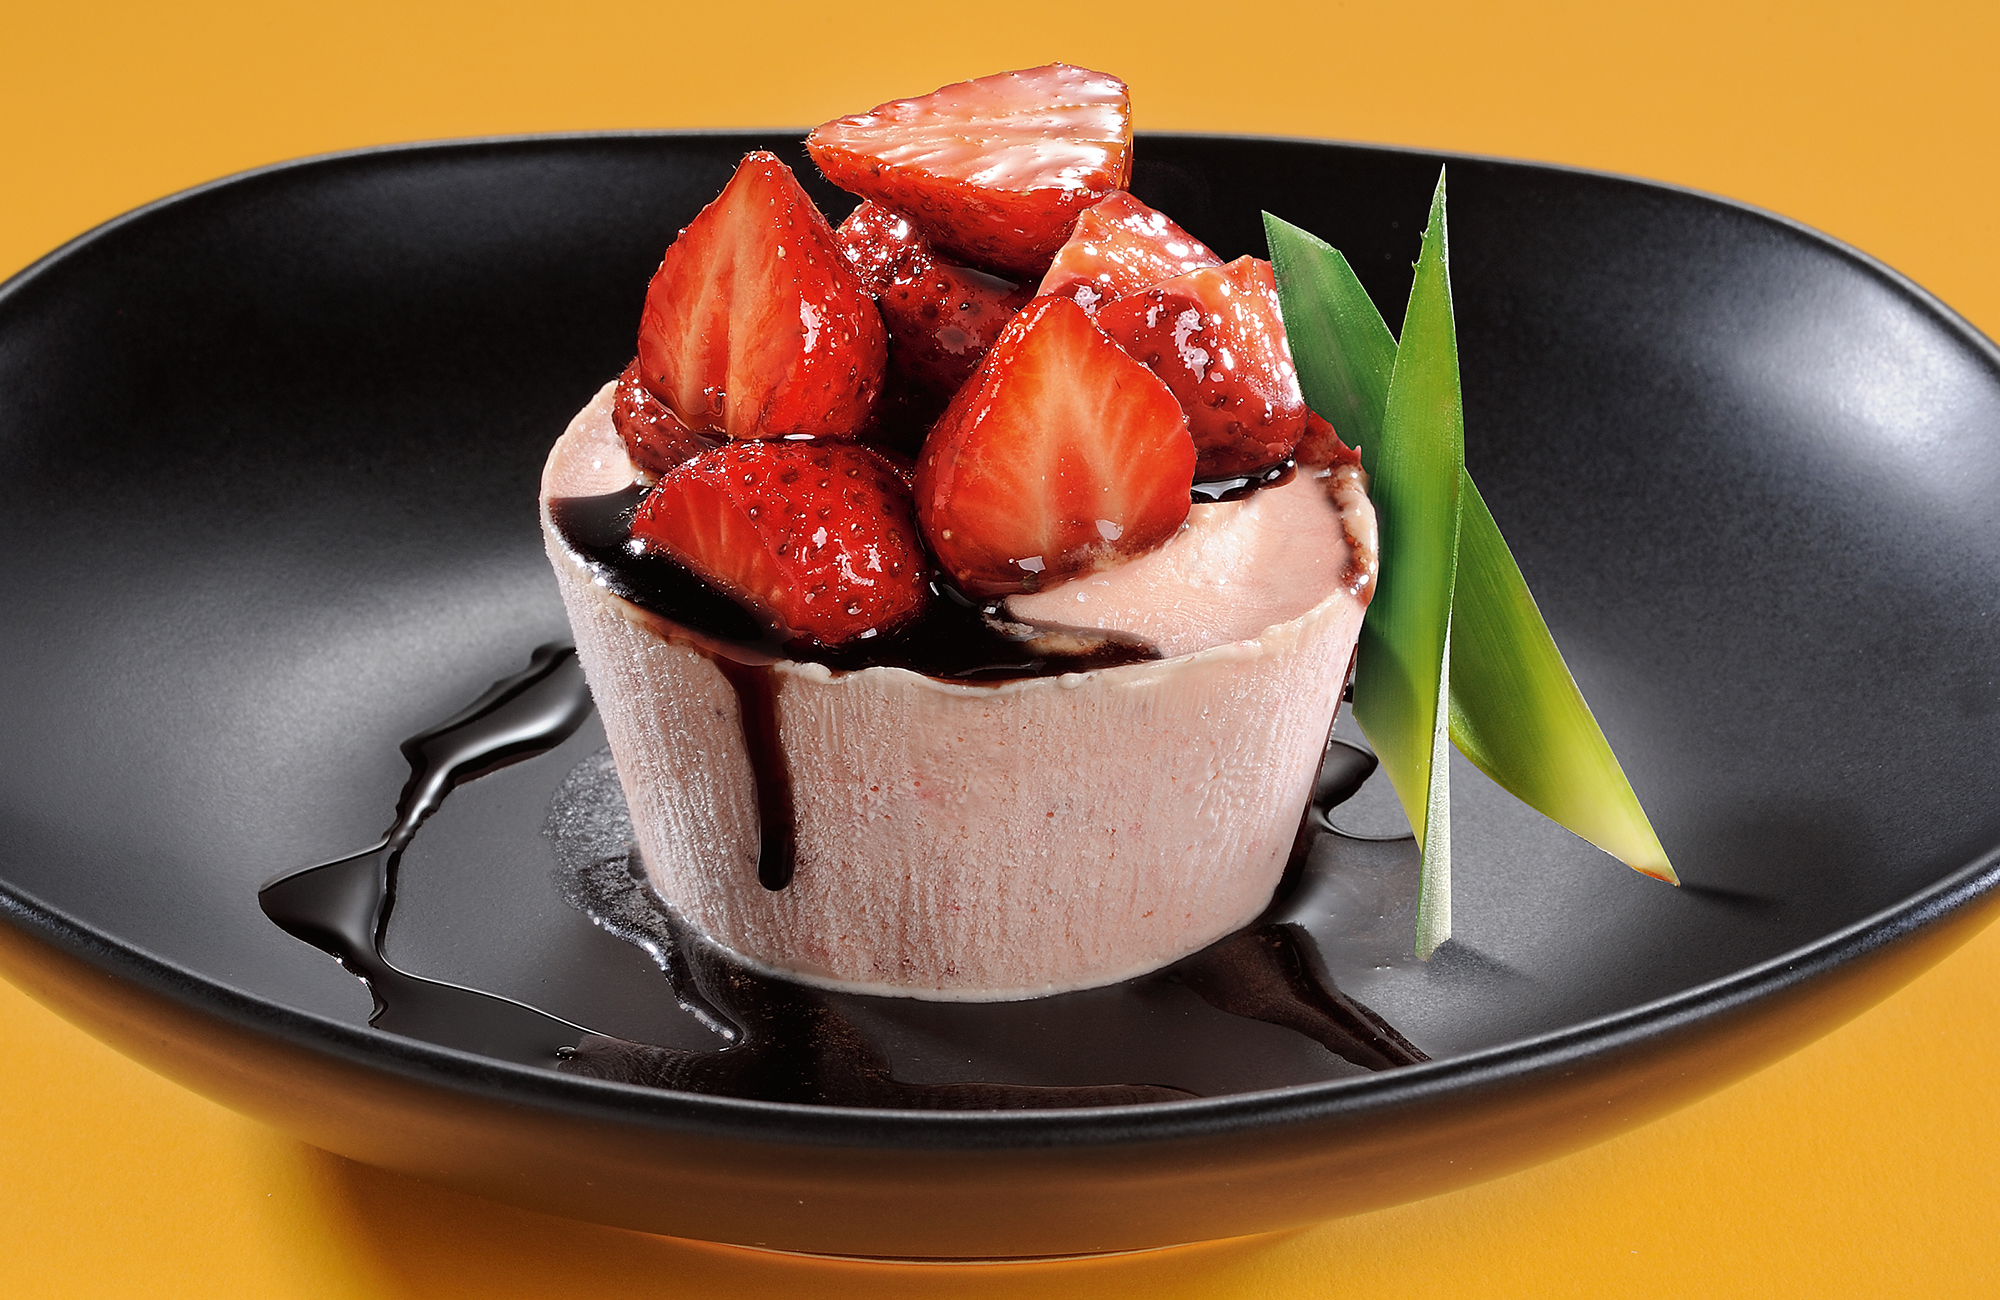 Strawberry semifreddo with Balsamic Vinegar of Modena Ponti - Ponti